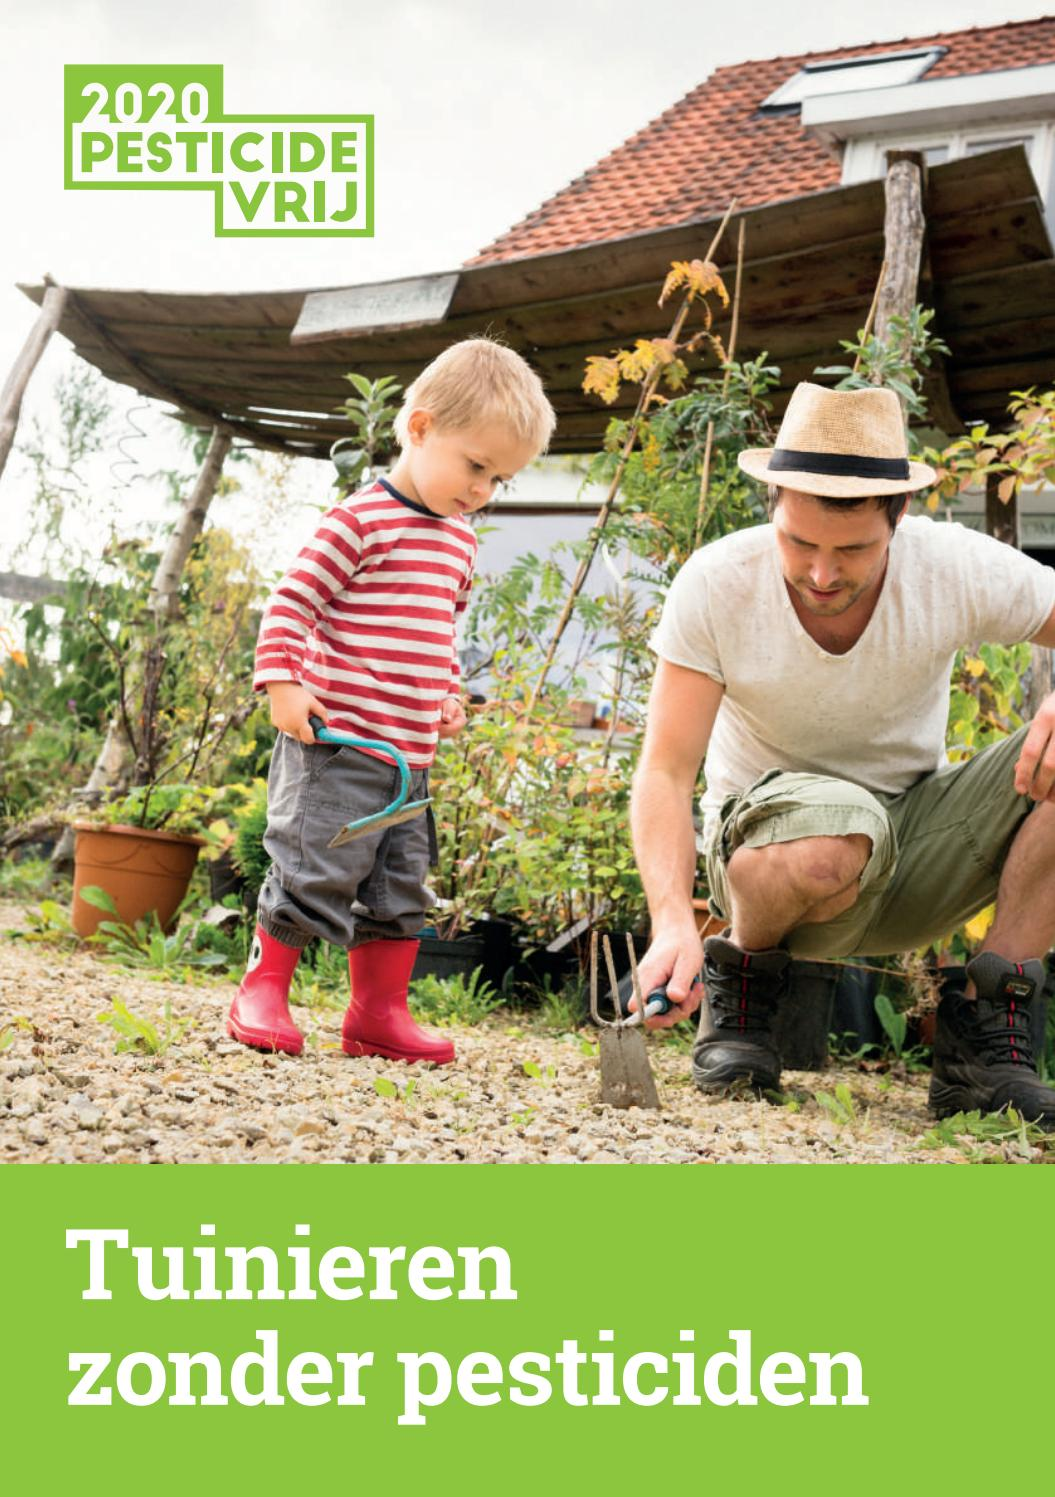 Tuinieren Contact Tuinieren Zonder Pesticiden By Velt Vzw Issuu